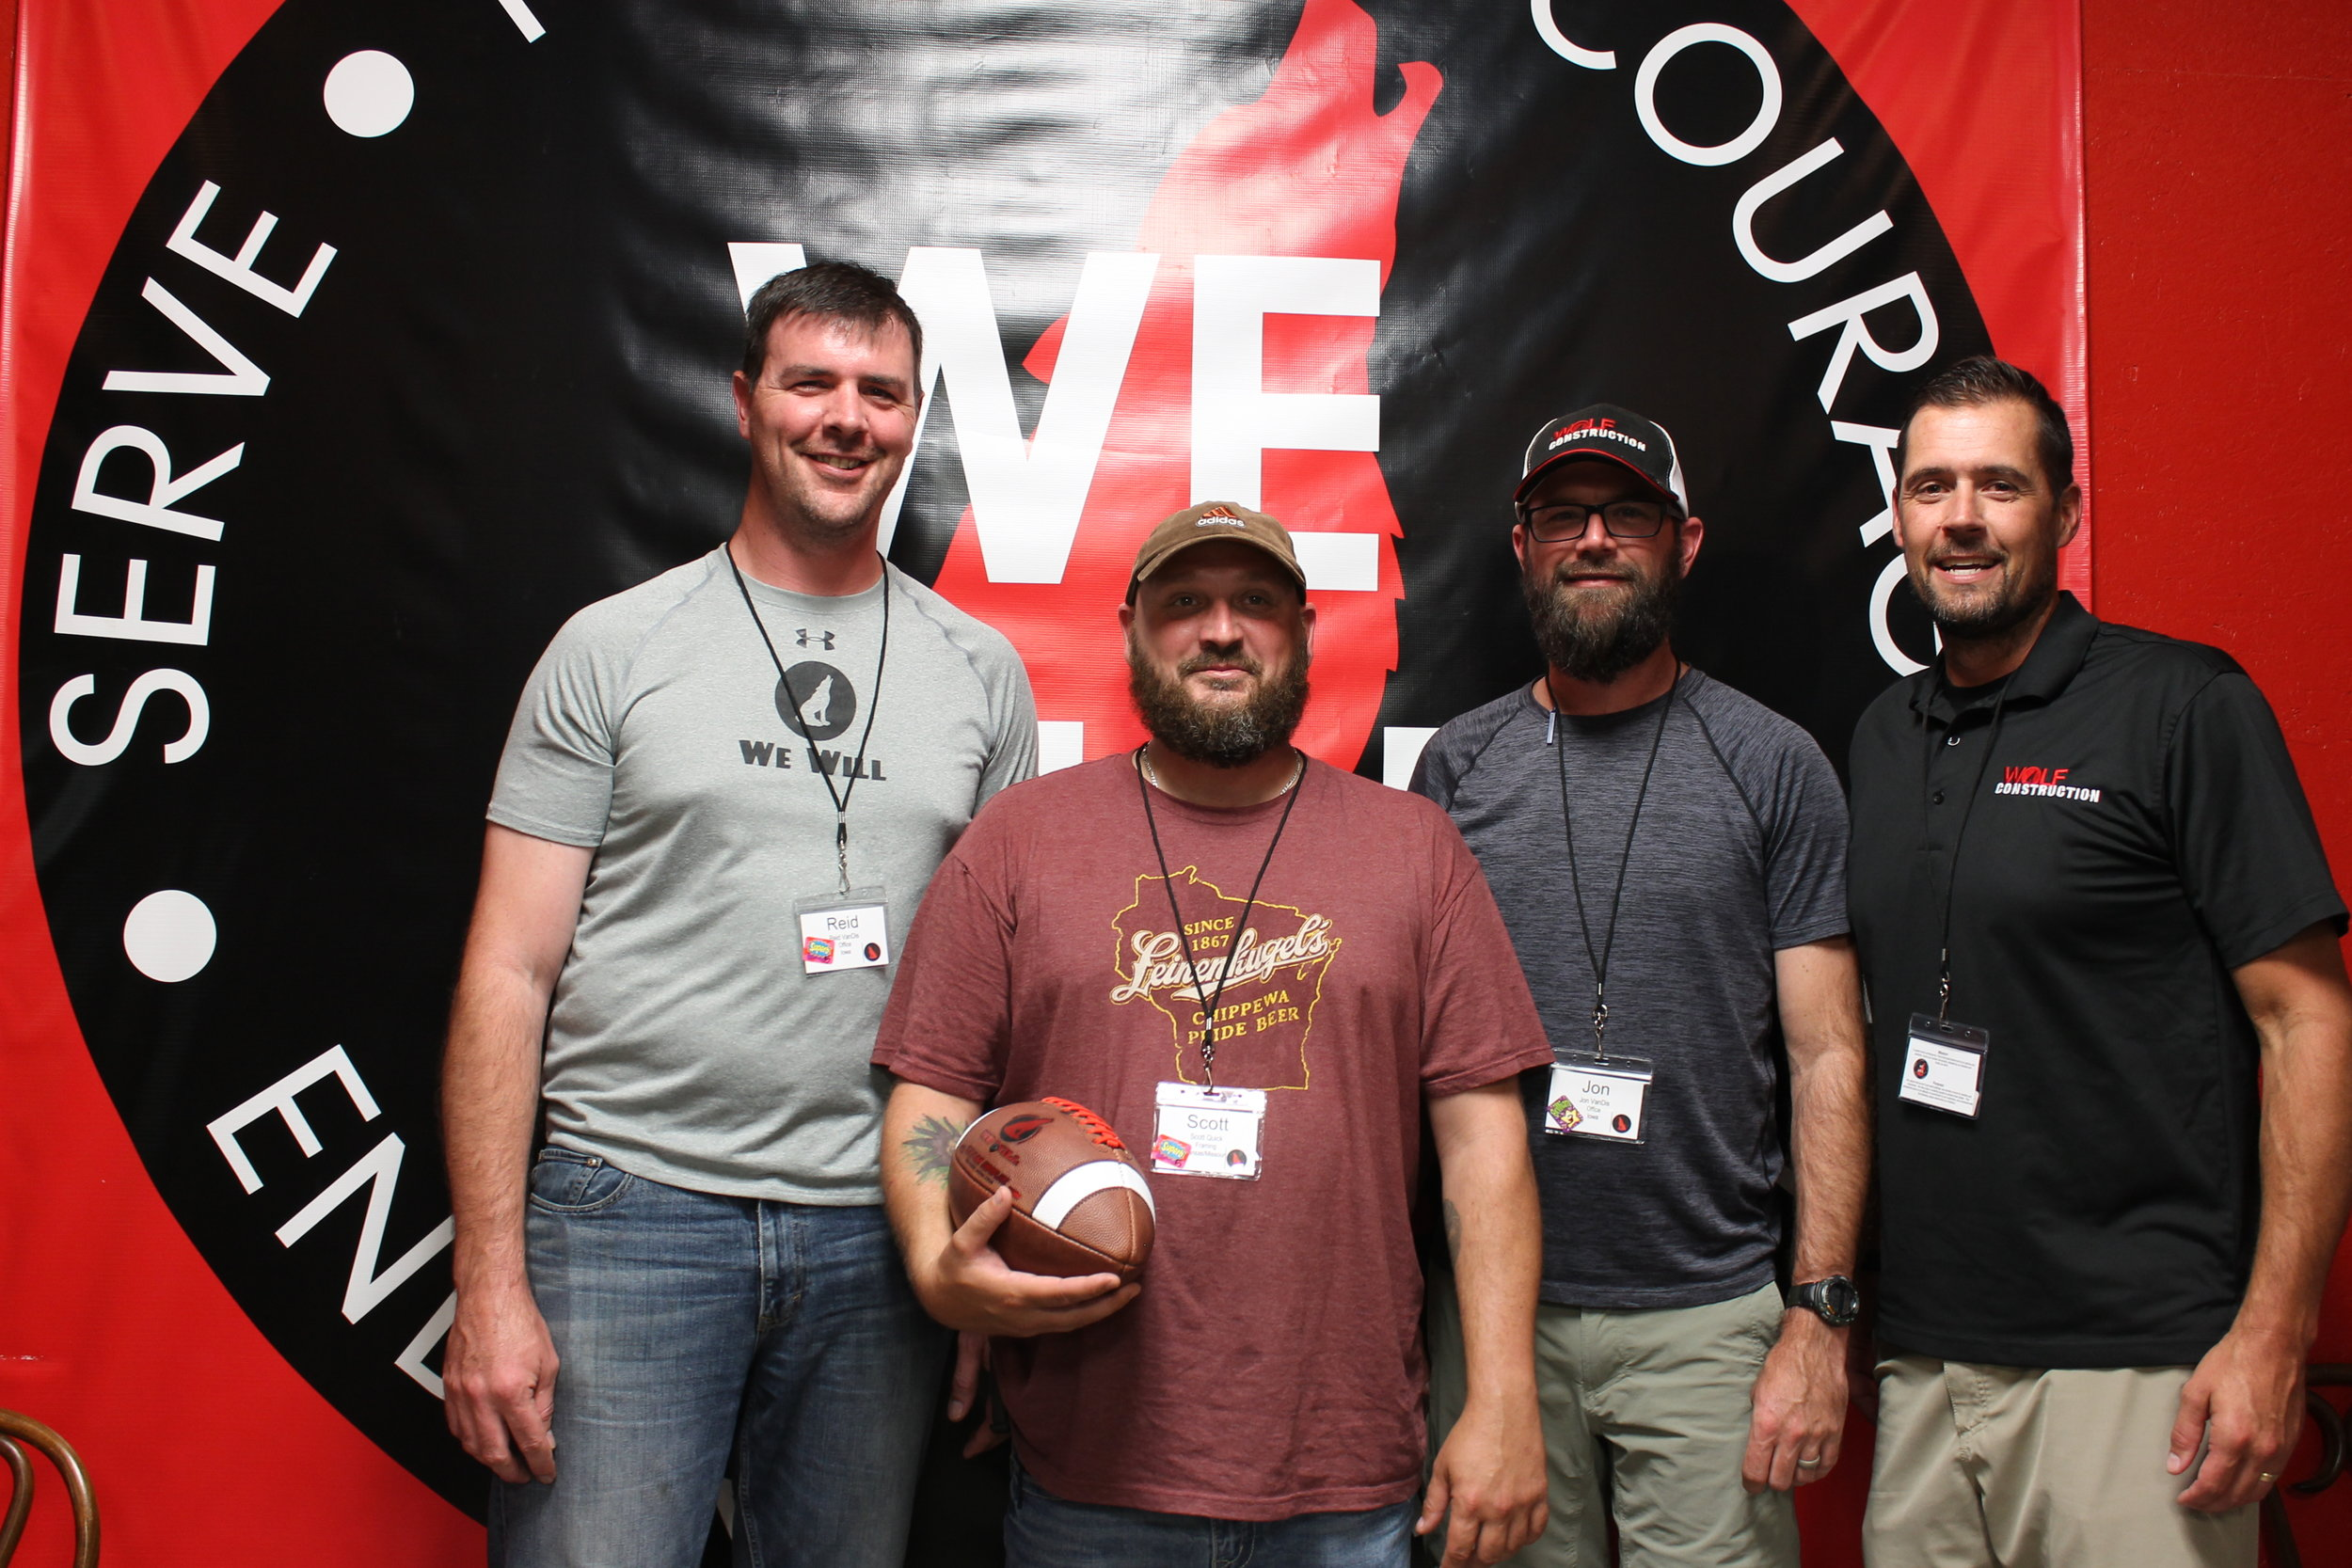 """Framing Crew Lead, Scott Quick is based in Kansas City and has been with Wolf Construction since 2015. He was awarded the Game Ball in September of 2017. Scott has embraced the We Will's of the company, is an eager learner, and comes to work each day with a """"yes-face"""". Most recently, he has been an integral part of one of the largest projects in the company's history by taking on the task of quality assurance and seeing to it that our scope of work was finished. Scott continues to learn the ways of the company and strives to be the best he can be. Pictured: R. VanDis, Scott Quick, J. VanDis,, B. Hoch"""